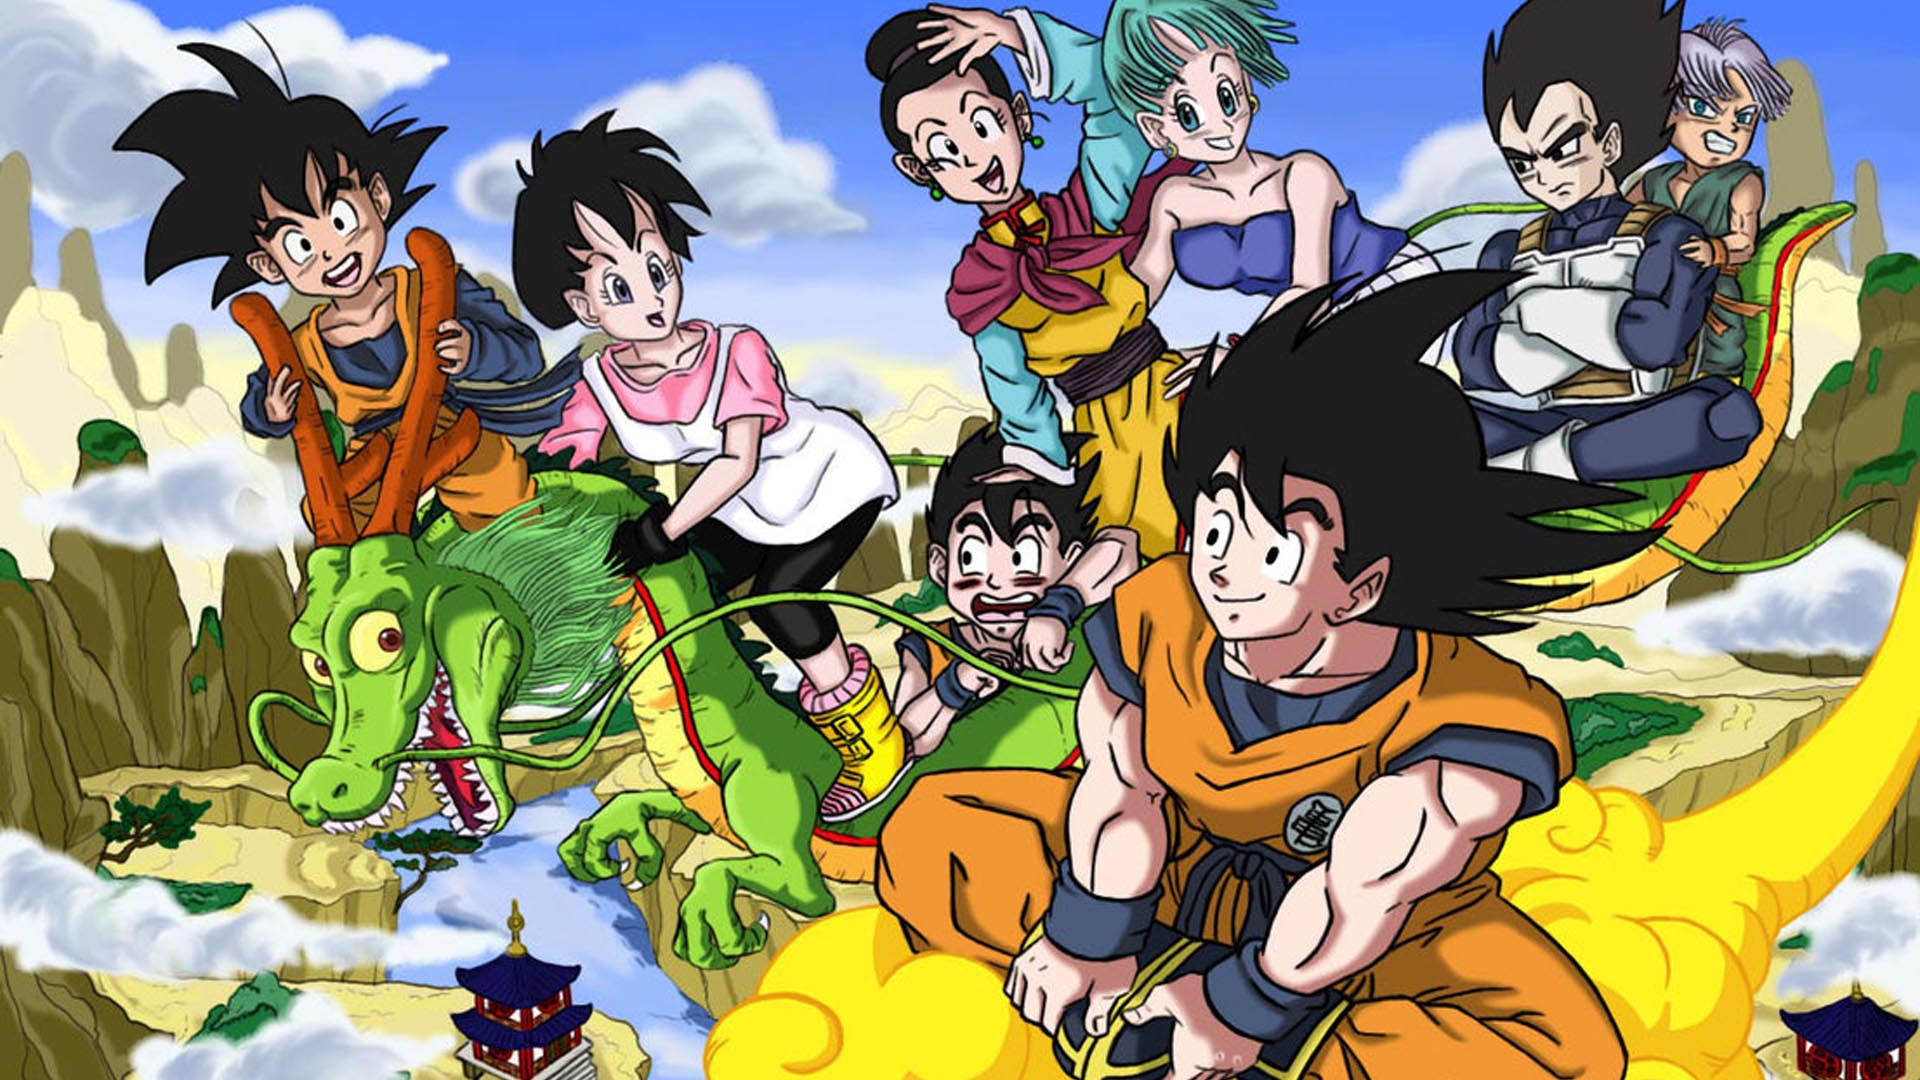 Dragonball HD 1920x1080 Wallpapers 1920x1080 Wallpapers Pictures 1920x1080